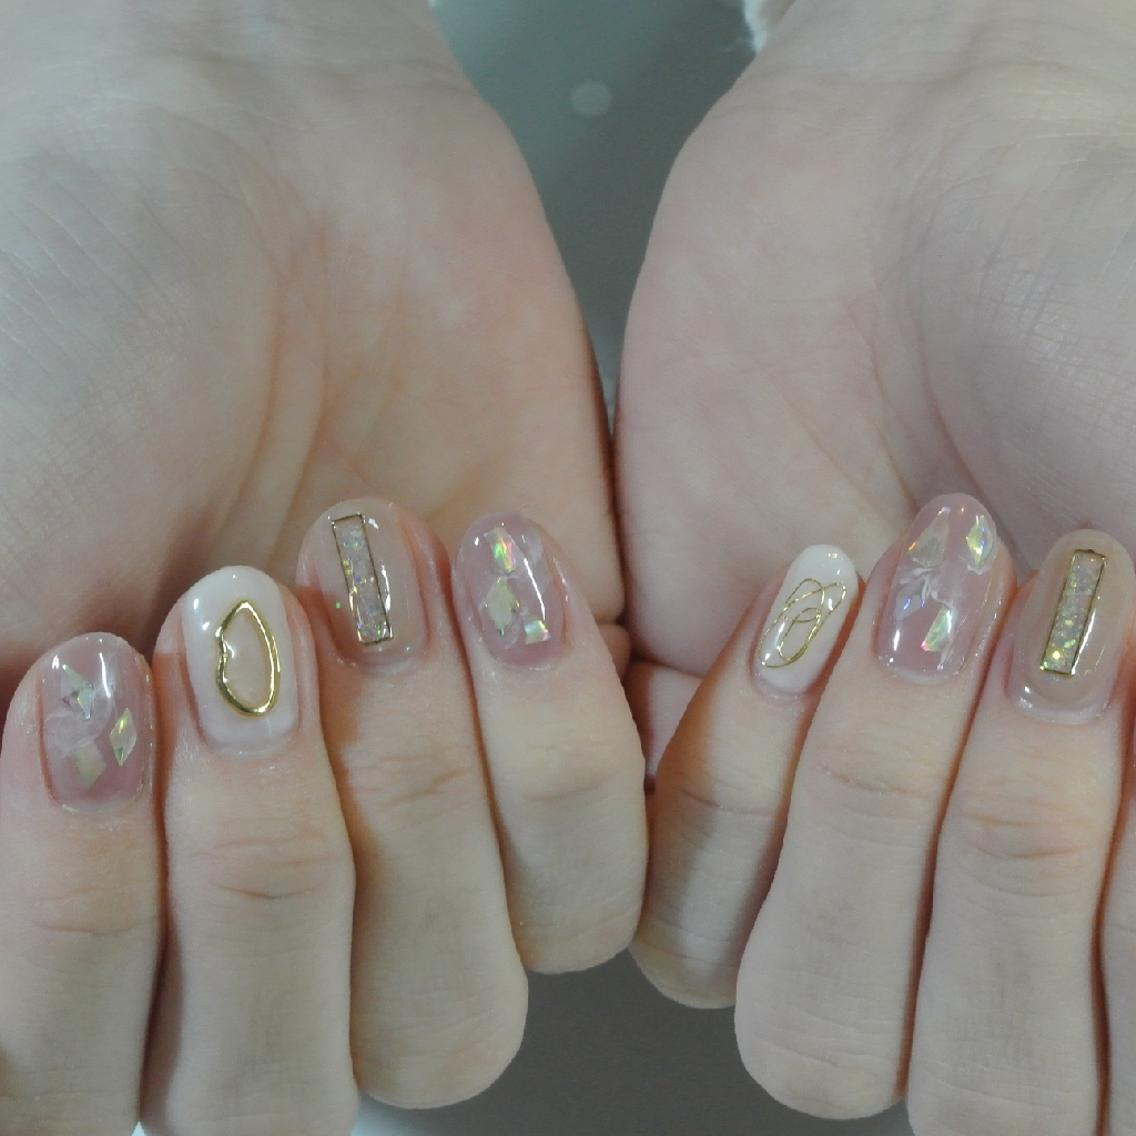 nail&beauty milly所属・miho (予約担当)の掲載